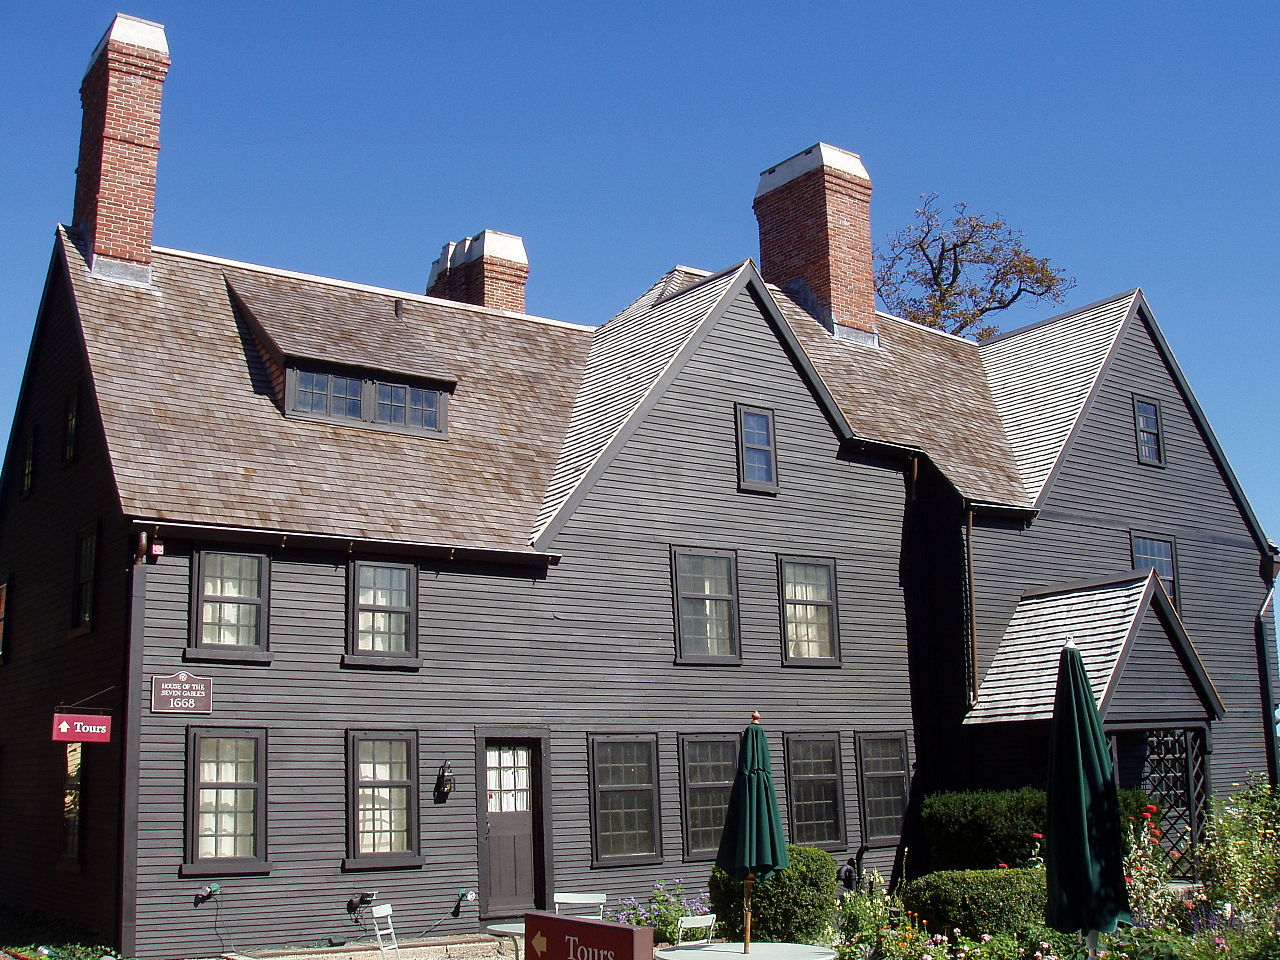 Come on Salem - embrace your inner tourist this Spring. That means visiting the House of the Seven Gables. Daderot at en.wikipediat en.wikipedia [GFDL (http://www.gnu.org/copyleft/fdl.html) or CC-BY-SA-3.0 (http://creativecommons.org/licenses/by-sa/3.0/)], via Wikimedia Commons